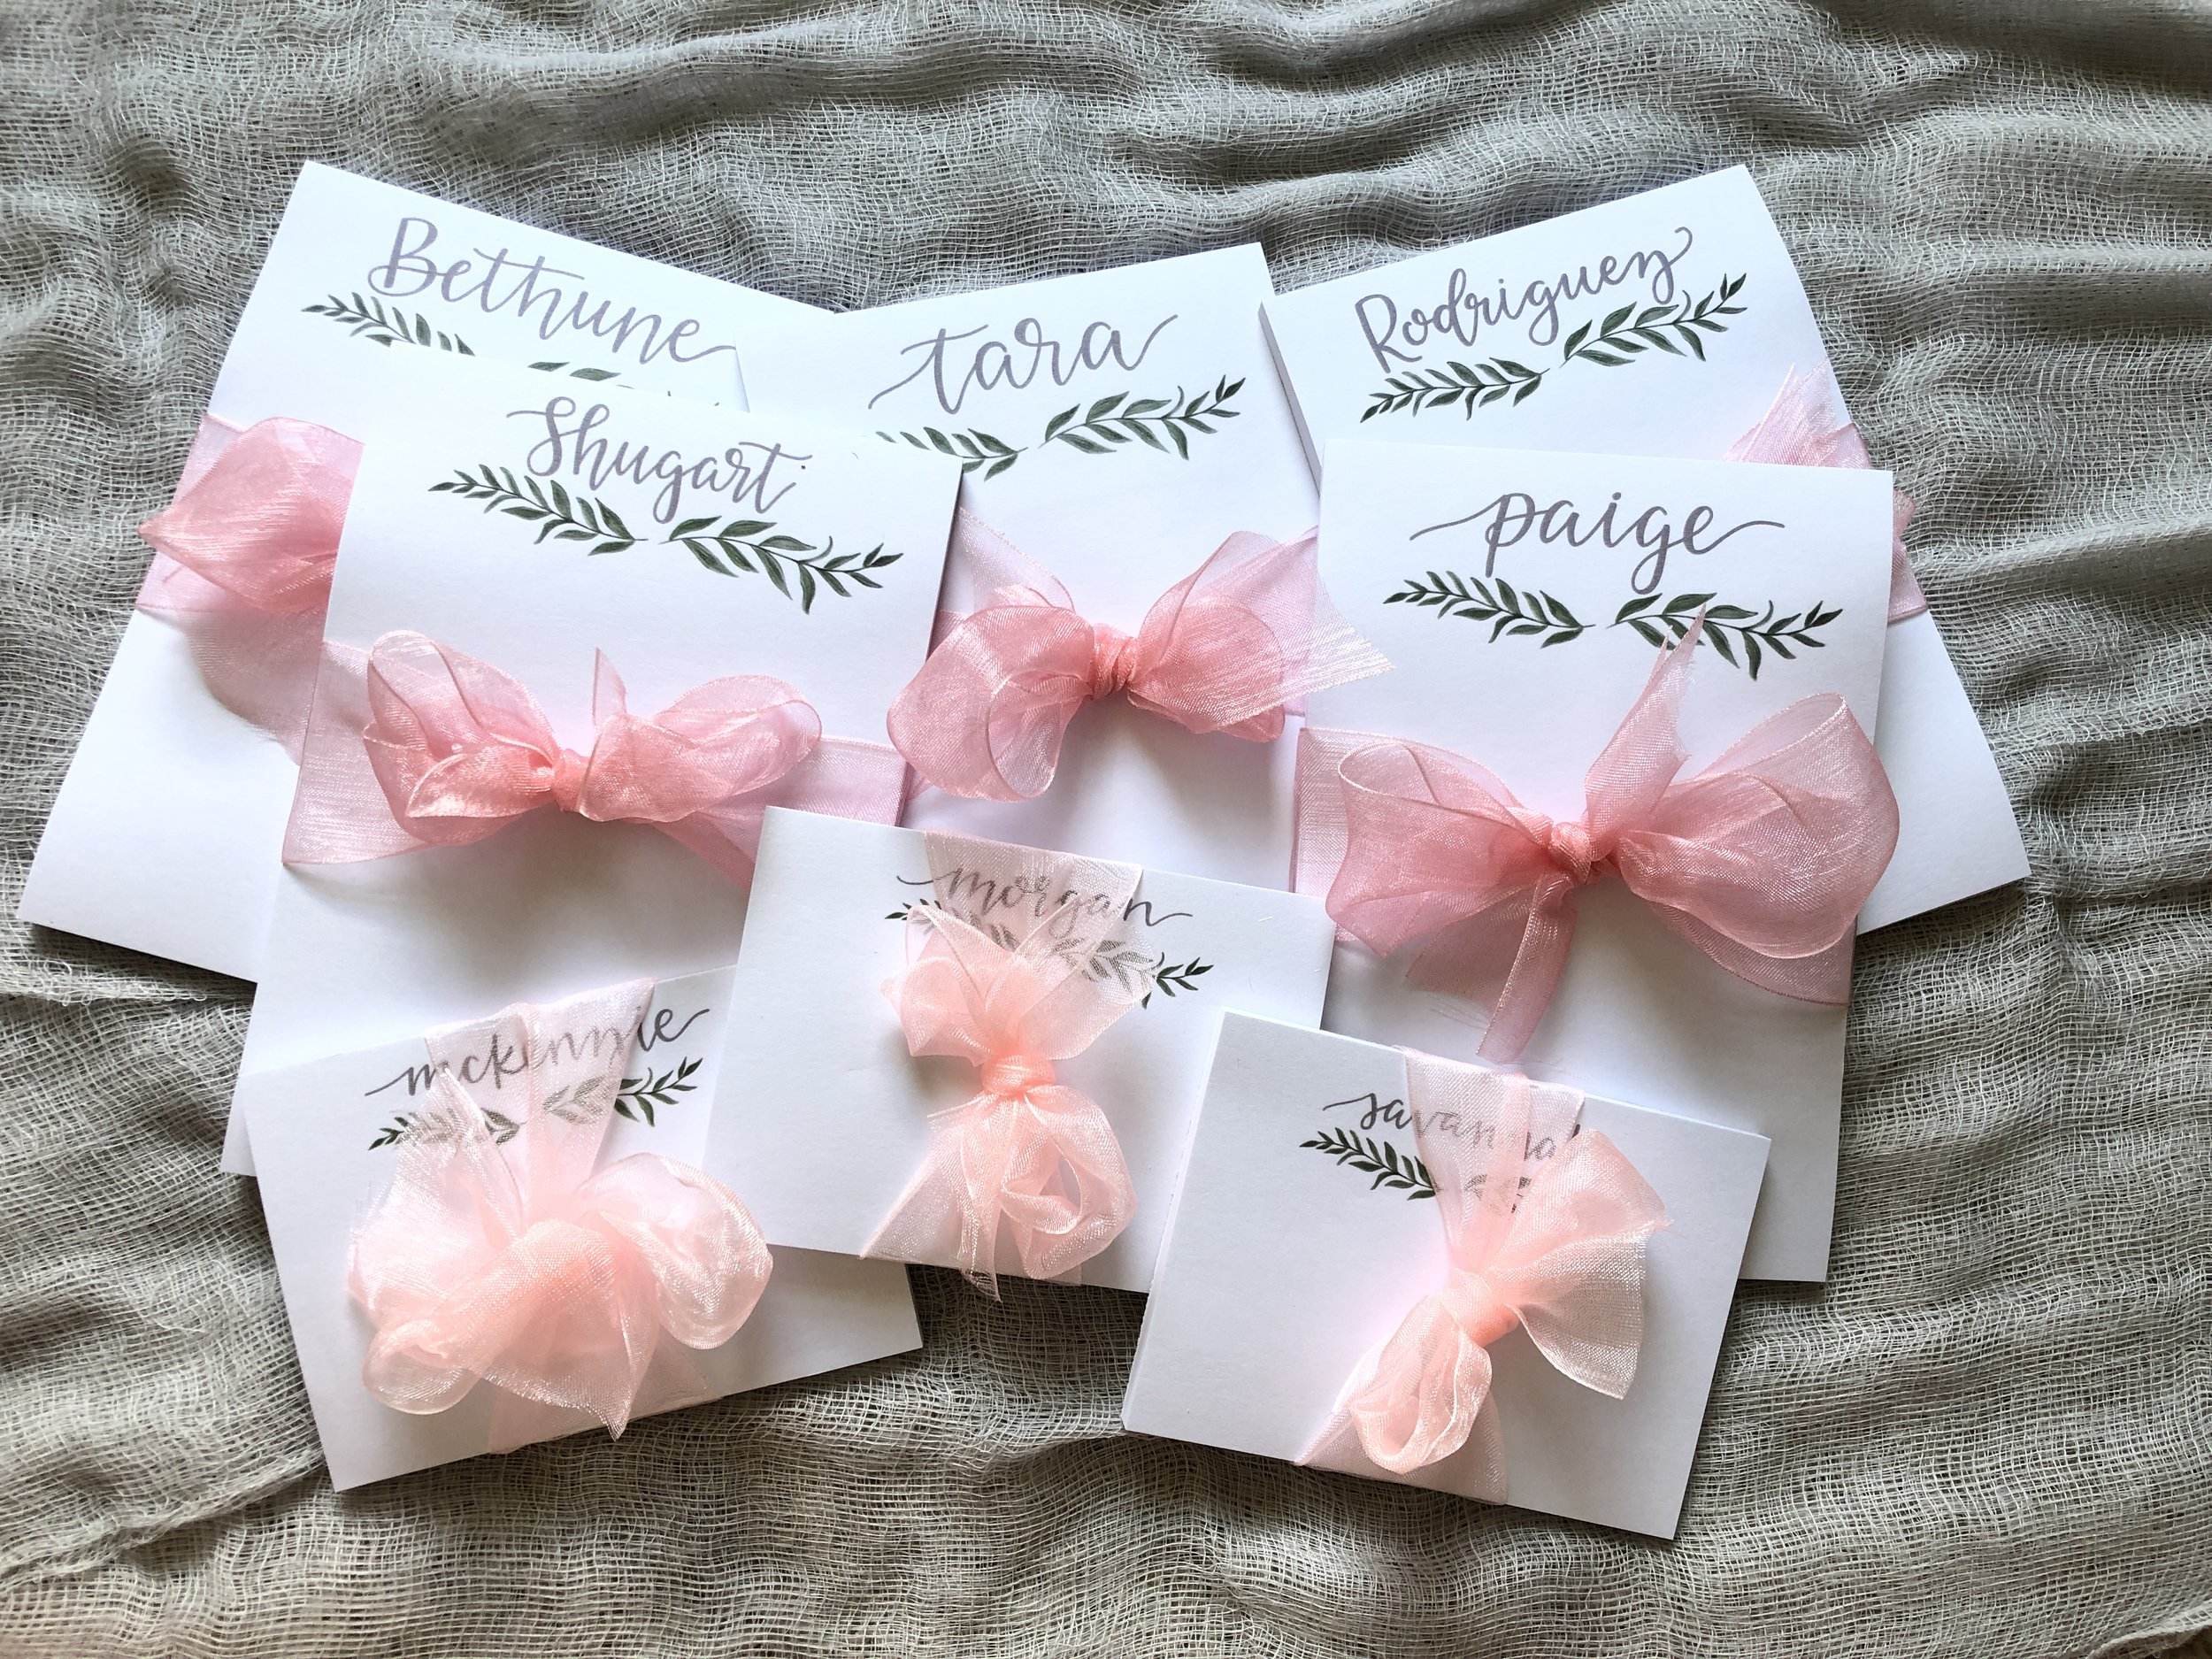 personalized notepads for bridesmaids